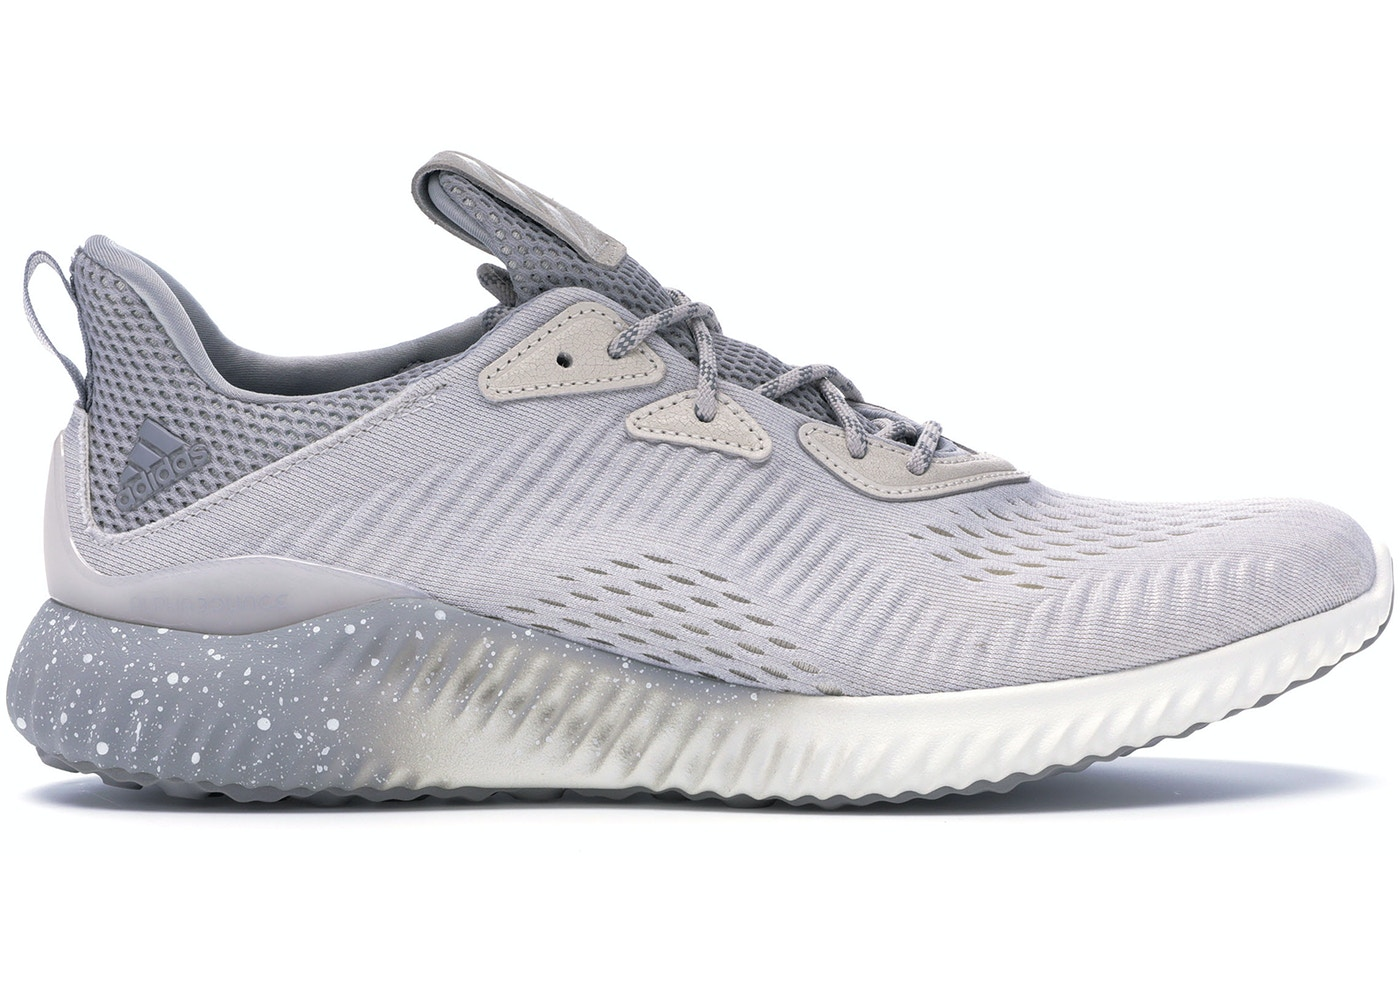 sale retailer 016fa 367b1 adidas Alphabounce Reigning Champ Core White